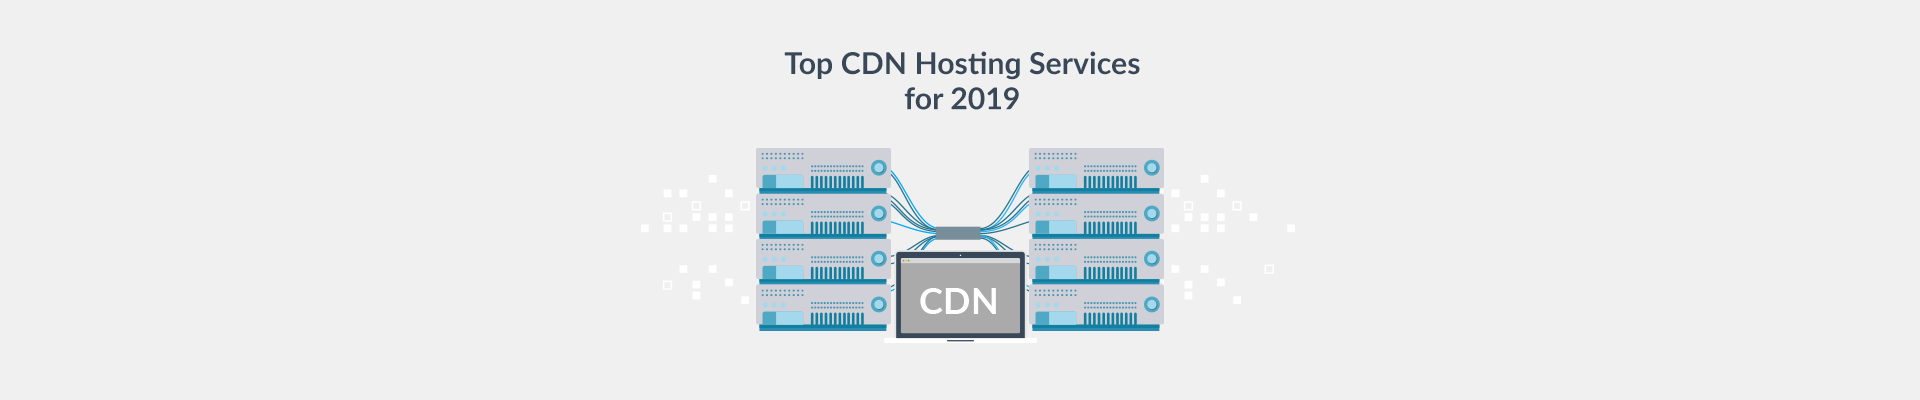 Top 10 CDN Services